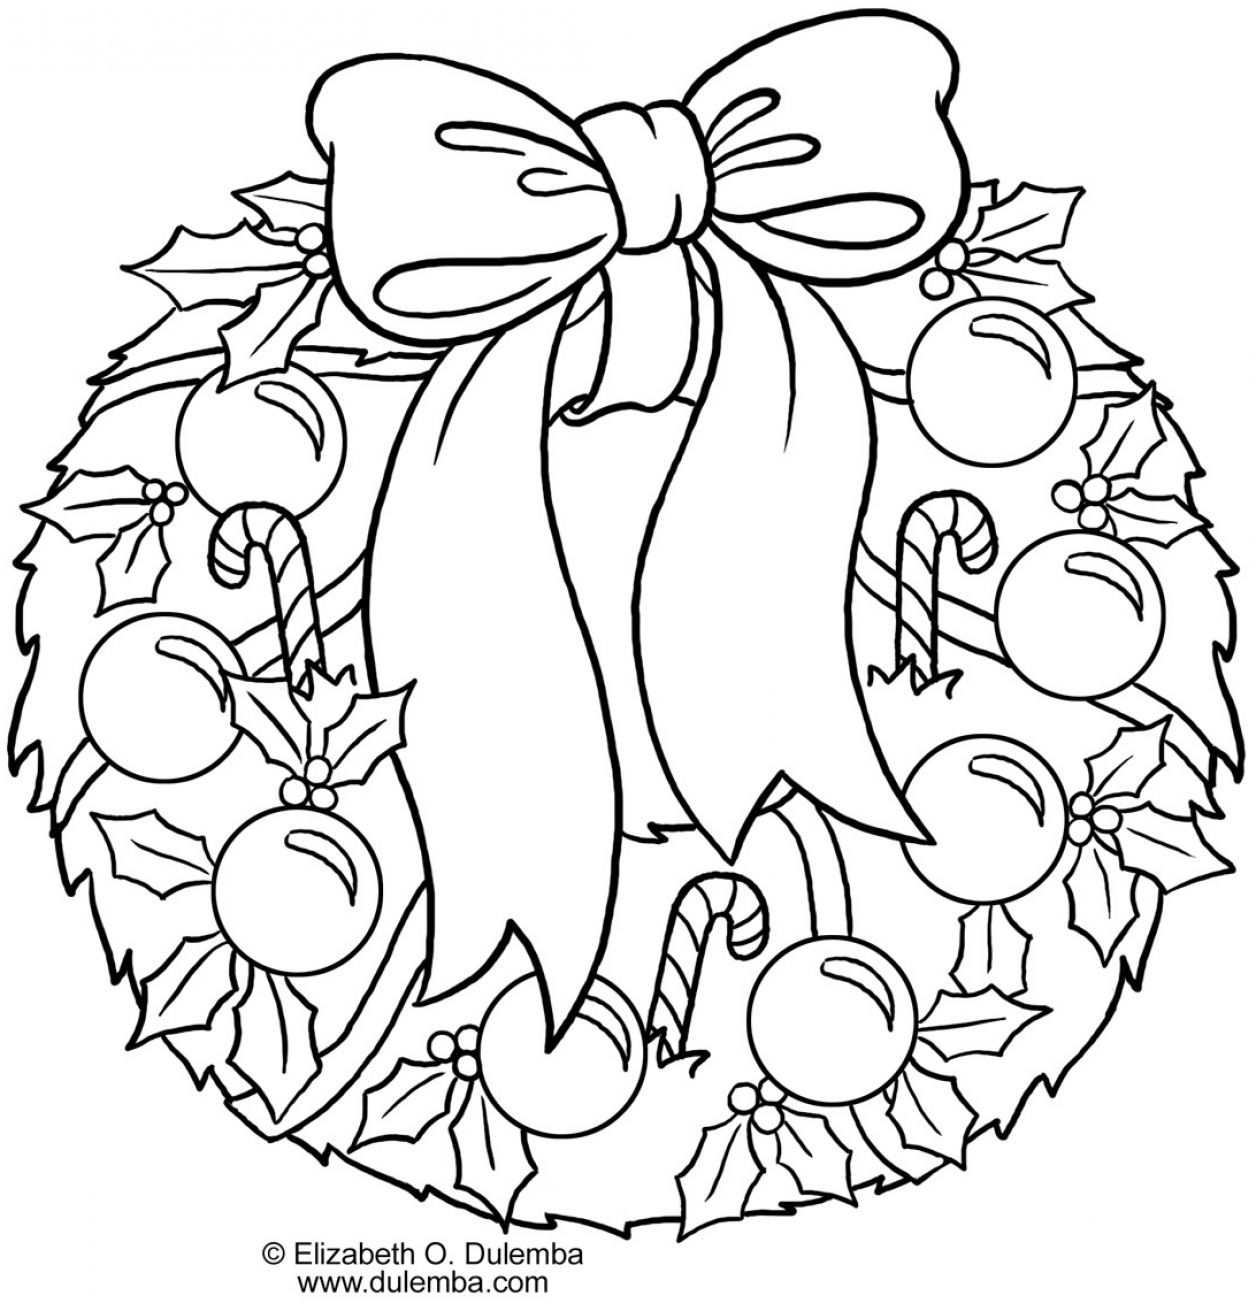 Christmas Wreath Coloring Pages To Print With Collect Getcoloringpages Kids